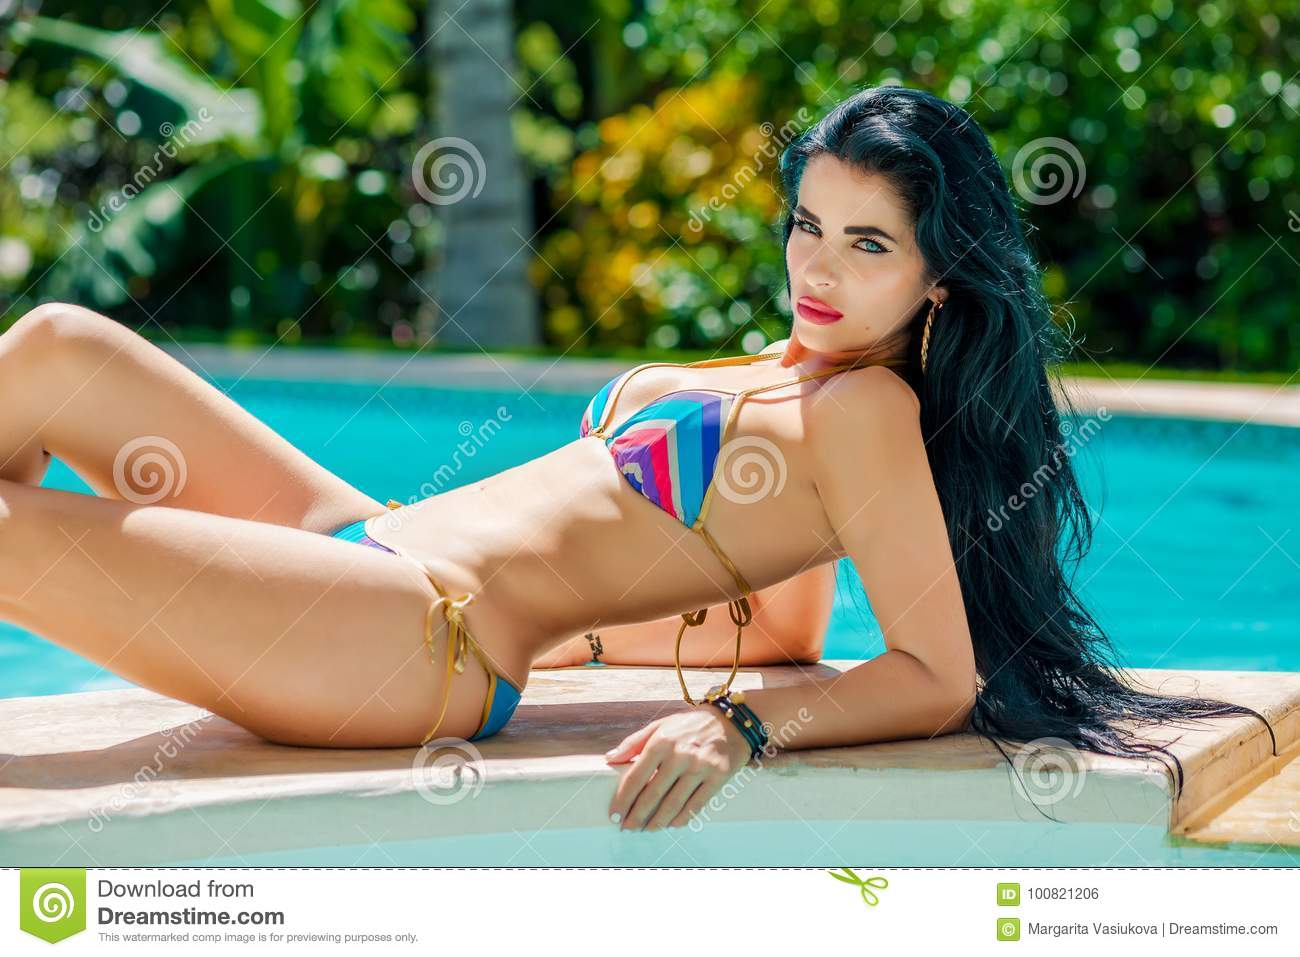 Really. Latina in bikini by a pool excellent idea